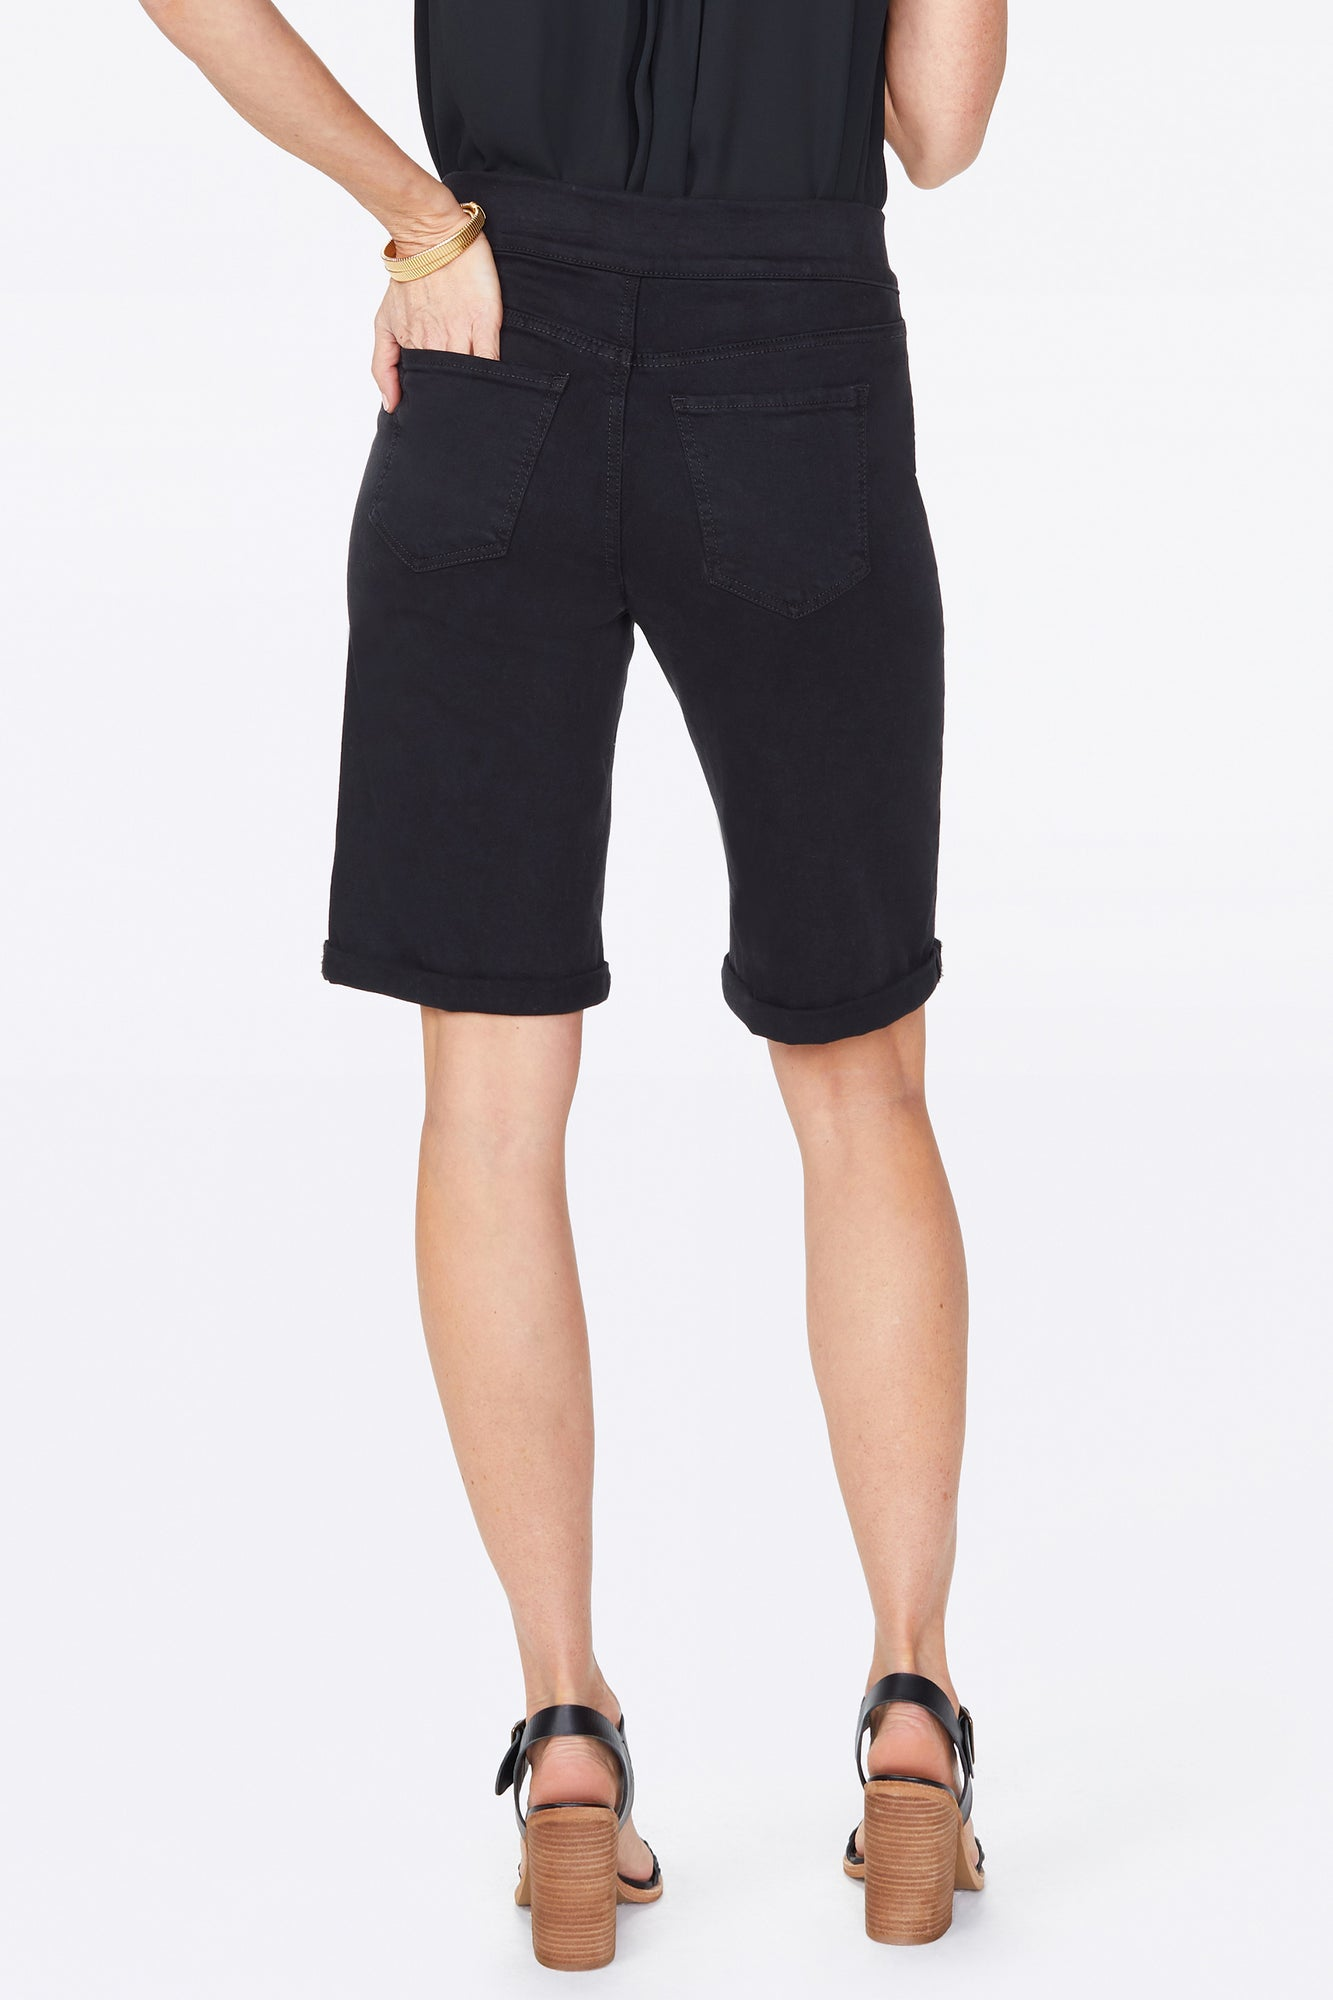 11 Inch Pull-On Jean Shorts - BLACK